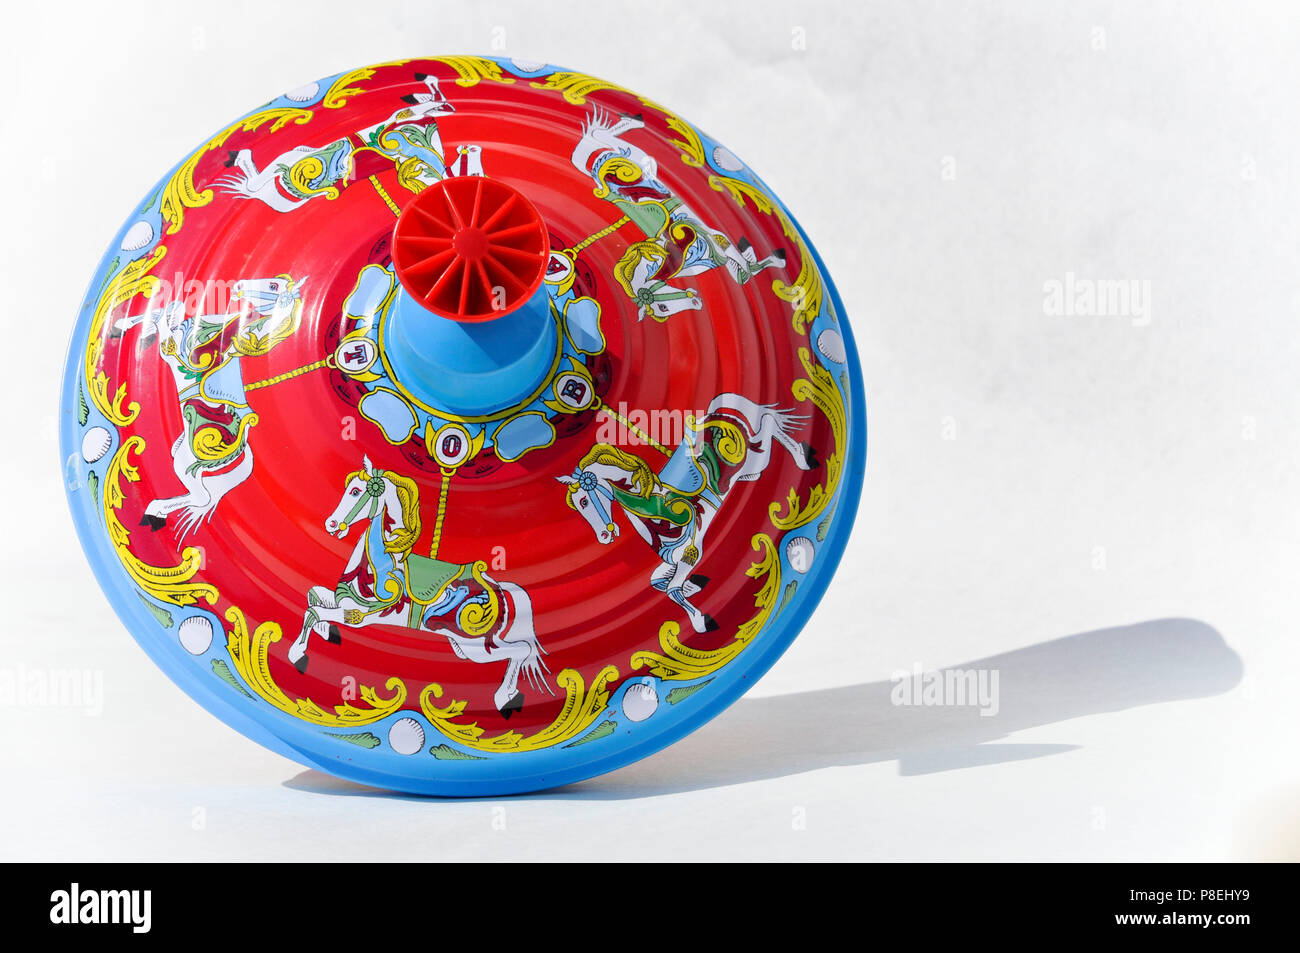 Spinning top - Stock Image